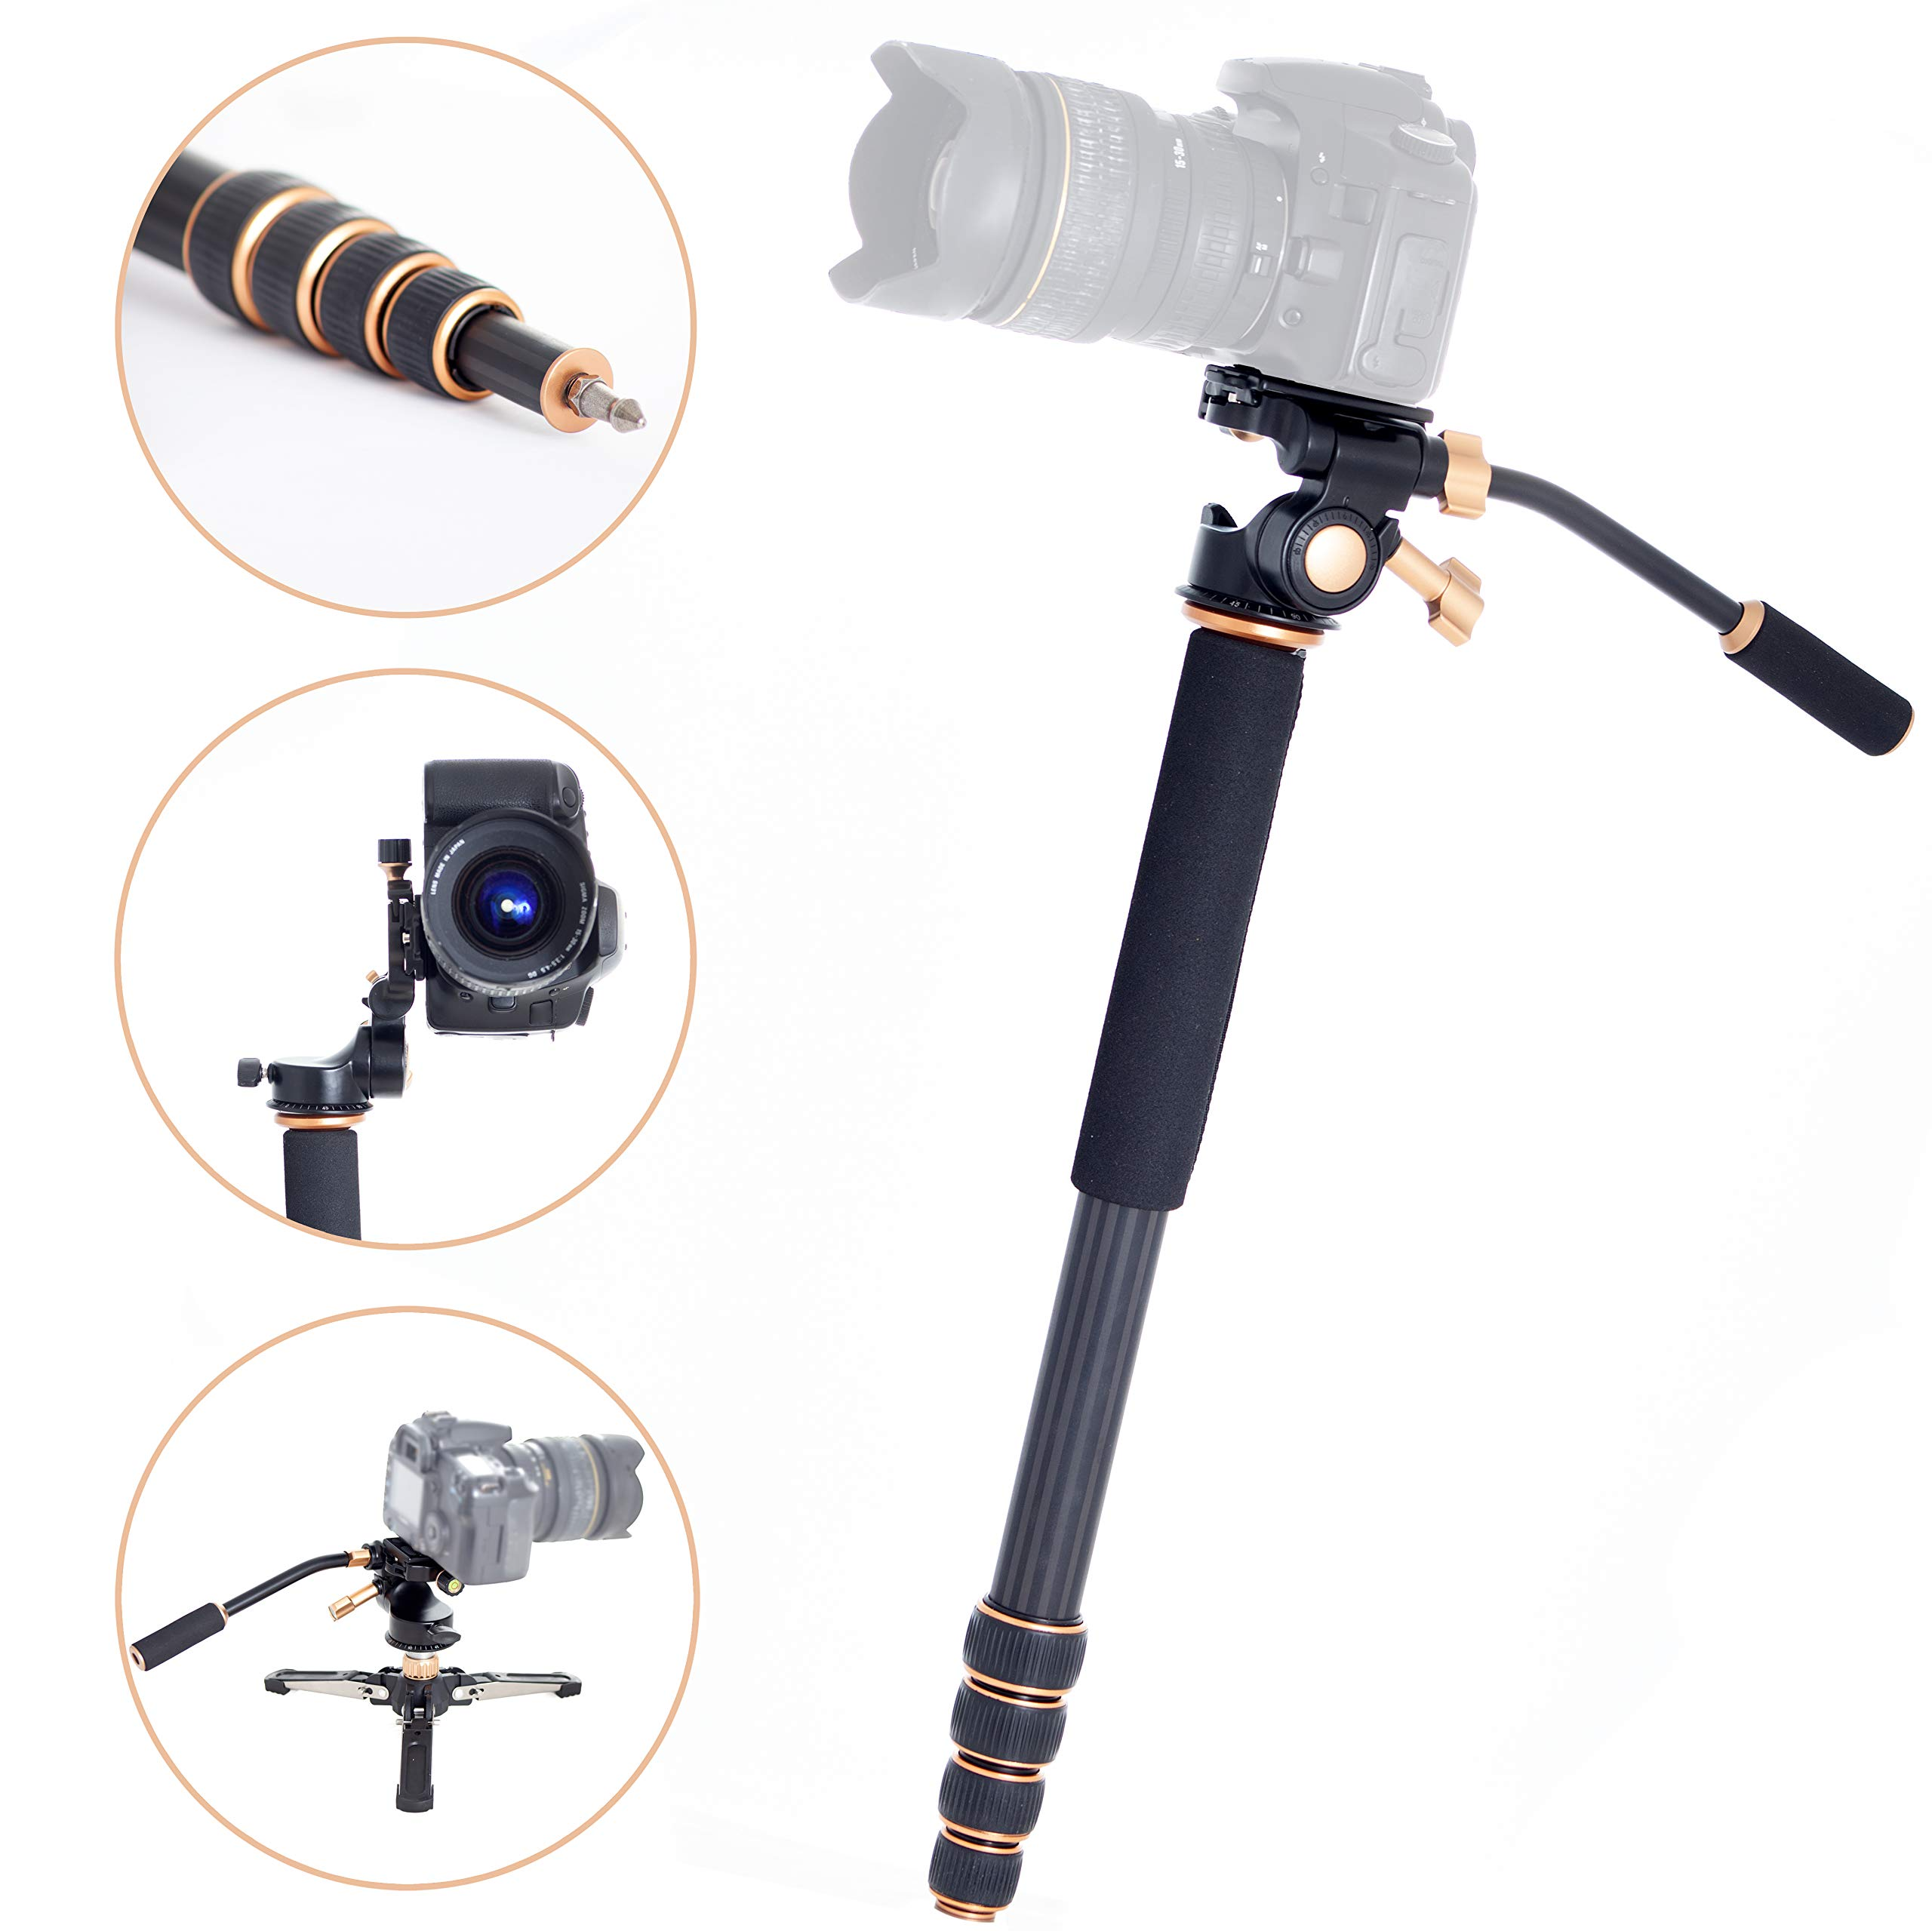 SenseiPhoto Professional Carbon Fiber Monopod Kit with Photo and Video 3-Way Head & Multi Direction Fluid Base for DSRL Cameras and Videocameras Pole Stick